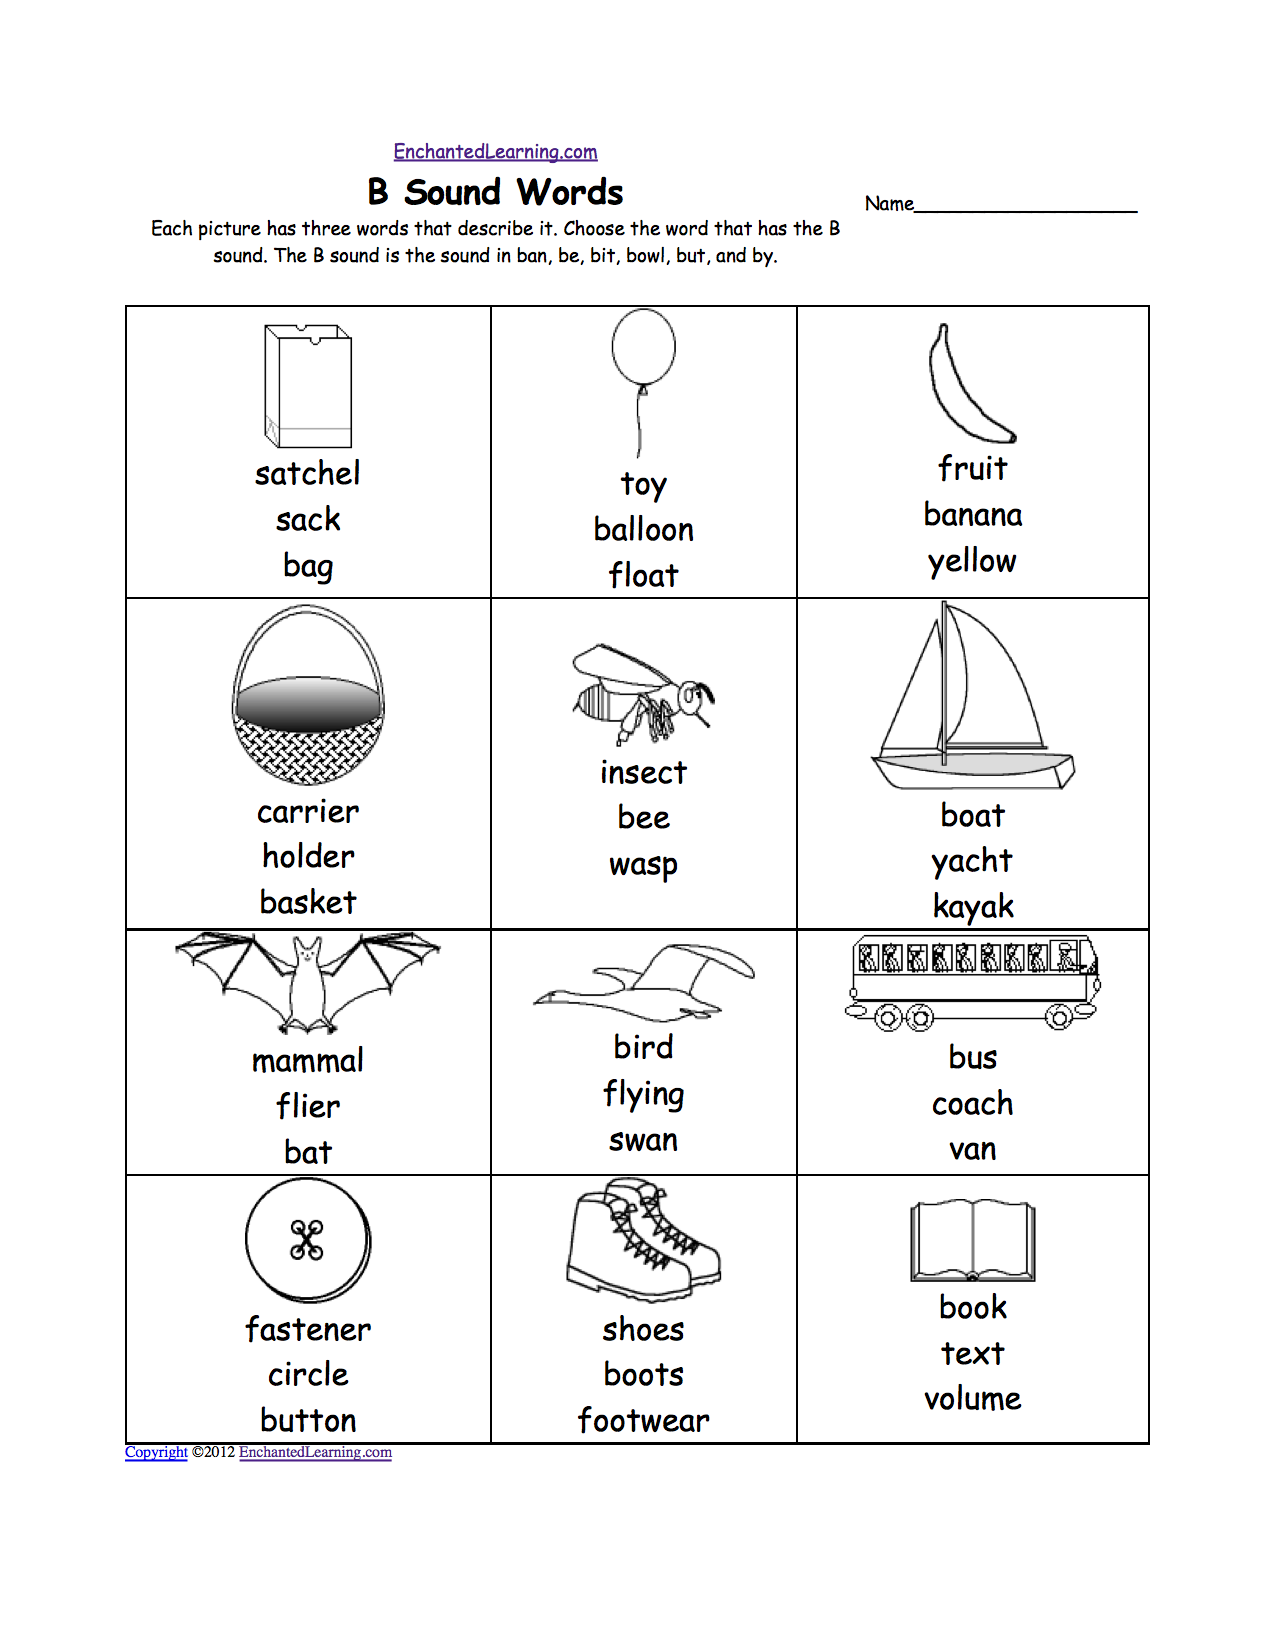 Weirdmailus  Outstanding Phonics Worksheets Multiple Choice Worksheets To Print  With Exquisite Quotbquot Sound Phonics Worksheet Multiple Choice Each Picture Has Three Words That Describe It Choose The Word That Has A Quotbquot Sound The Quotbquot Sound Is The Sound  With Archaic Homonym Worksheets Free Also Pronouns Worksheets Rd Grade In Addition Rounding Decimals To Whole Numbers Worksheet And Alphabet Dot To Dot Worksheets As Well As Printable Context Clues Worksheets Additionally Clocks Worksheet Generator From Enchantedlearningcom With Weirdmailus  Exquisite Phonics Worksheets Multiple Choice Worksheets To Print  With Archaic Quotbquot Sound Phonics Worksheet Multiple Choice Each Picture Has Three Words That Describe It Choose The Word That Has A Quotbquot Sound The Quotbquot Sound Is The Sound  And Outstanding Homonym Worksheets Free Also Pronouns Worksheets Rd Grade In Addition Rounding Decimals To Whole Numbers Worksheet From Enchantedlearningcom